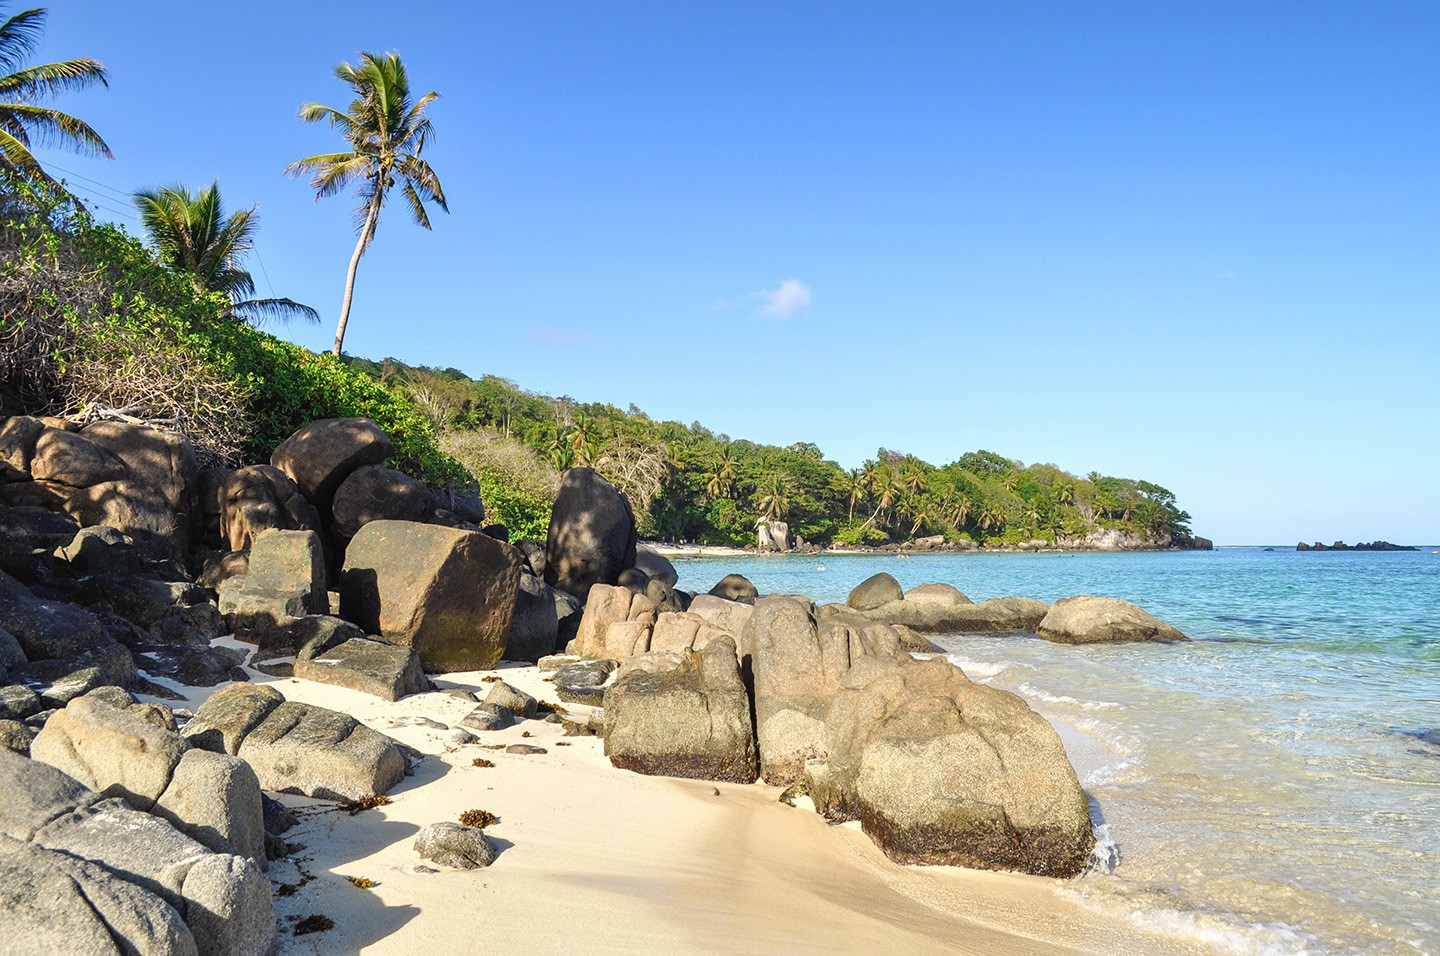 Anse Royale beach in the Seychelles